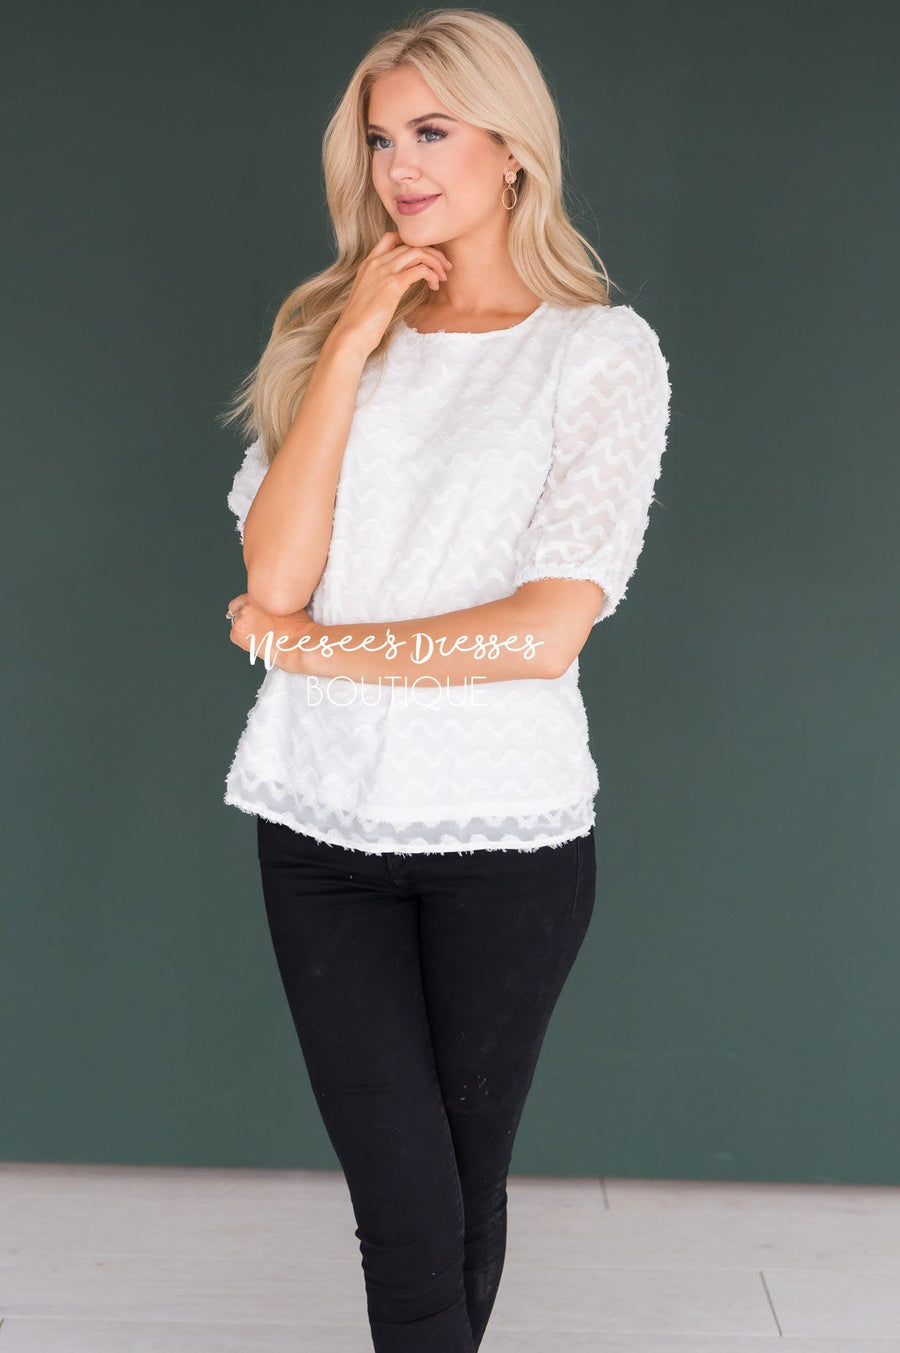 Brighter Days Textured Blouse Tops vendor-unknown